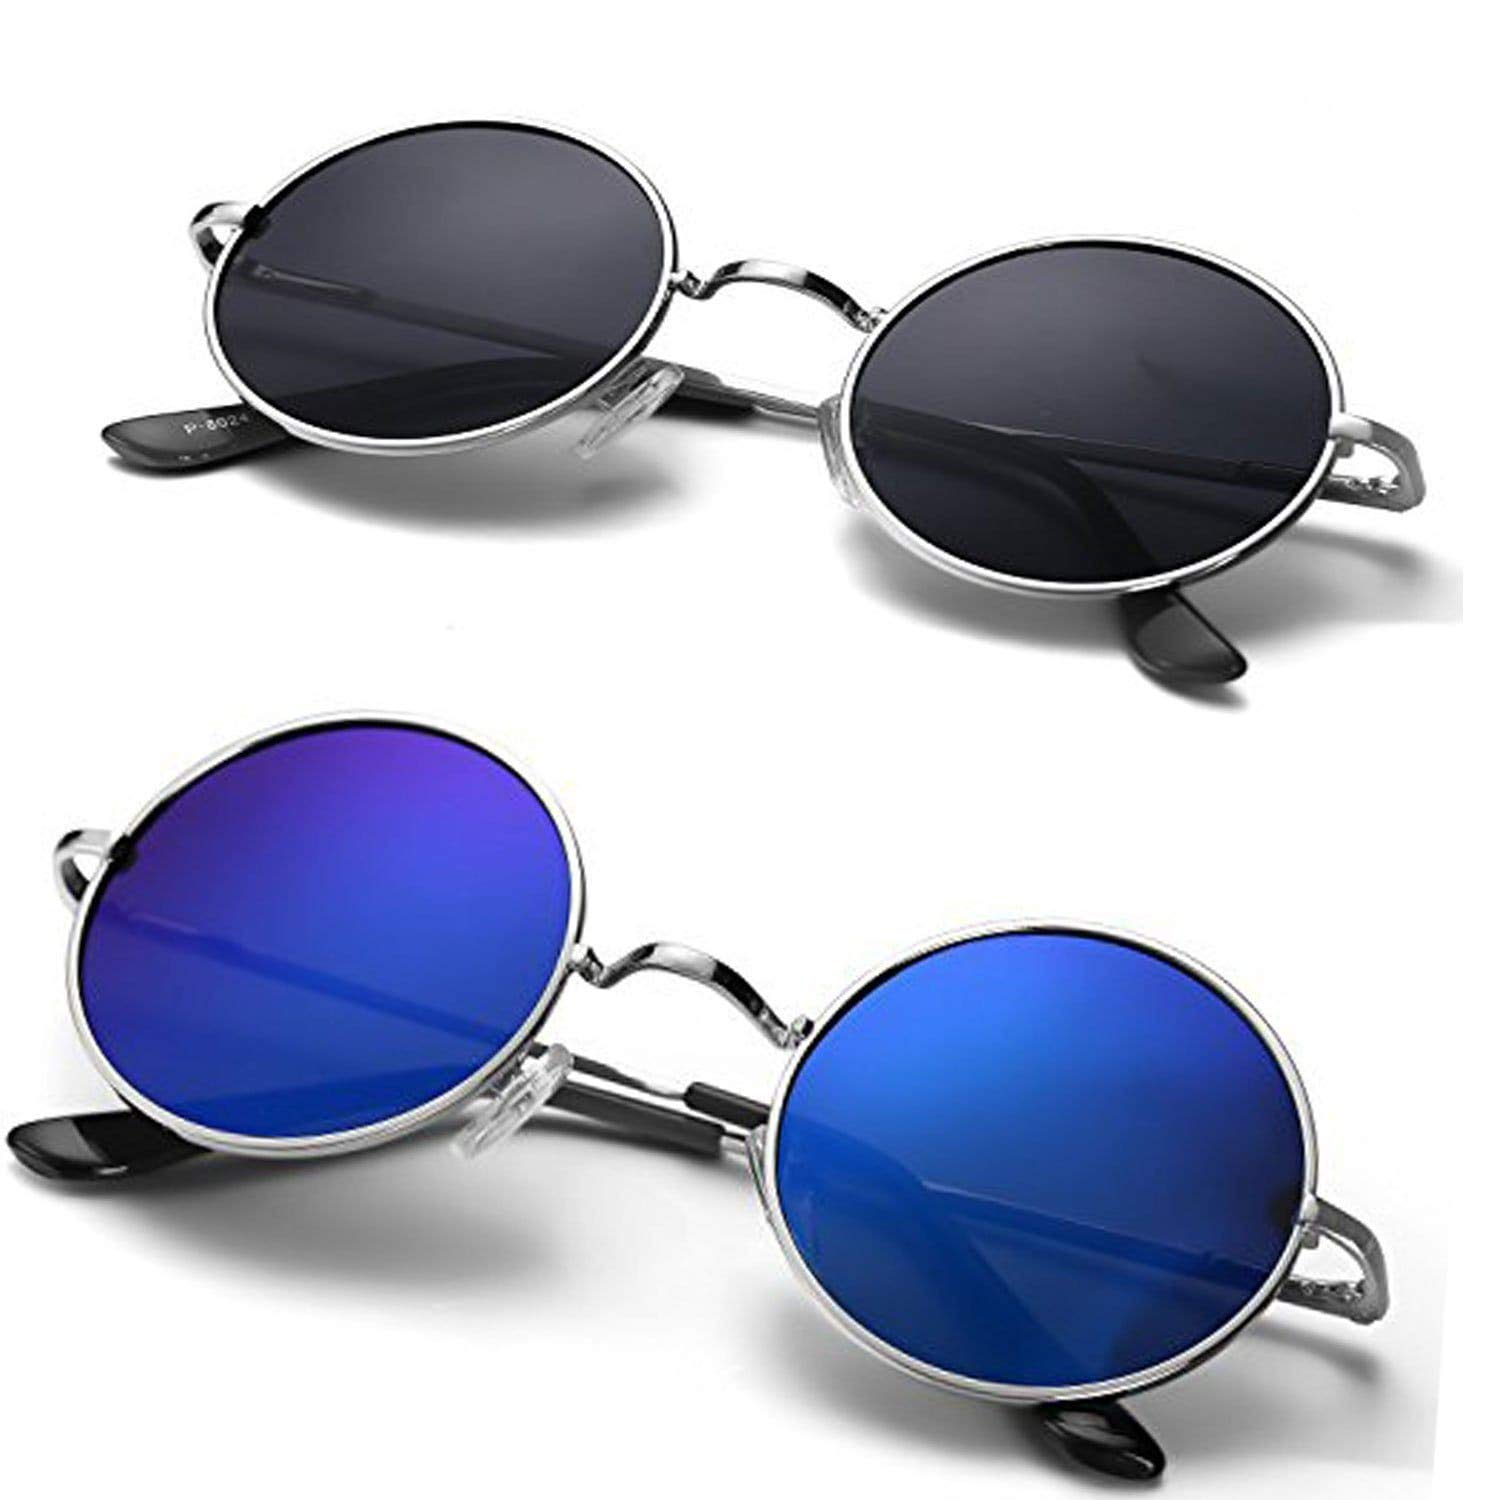 Non-Polarized UV-Protected Round Unisex Sunglasses (Blue & Black) Combo Pack of 2